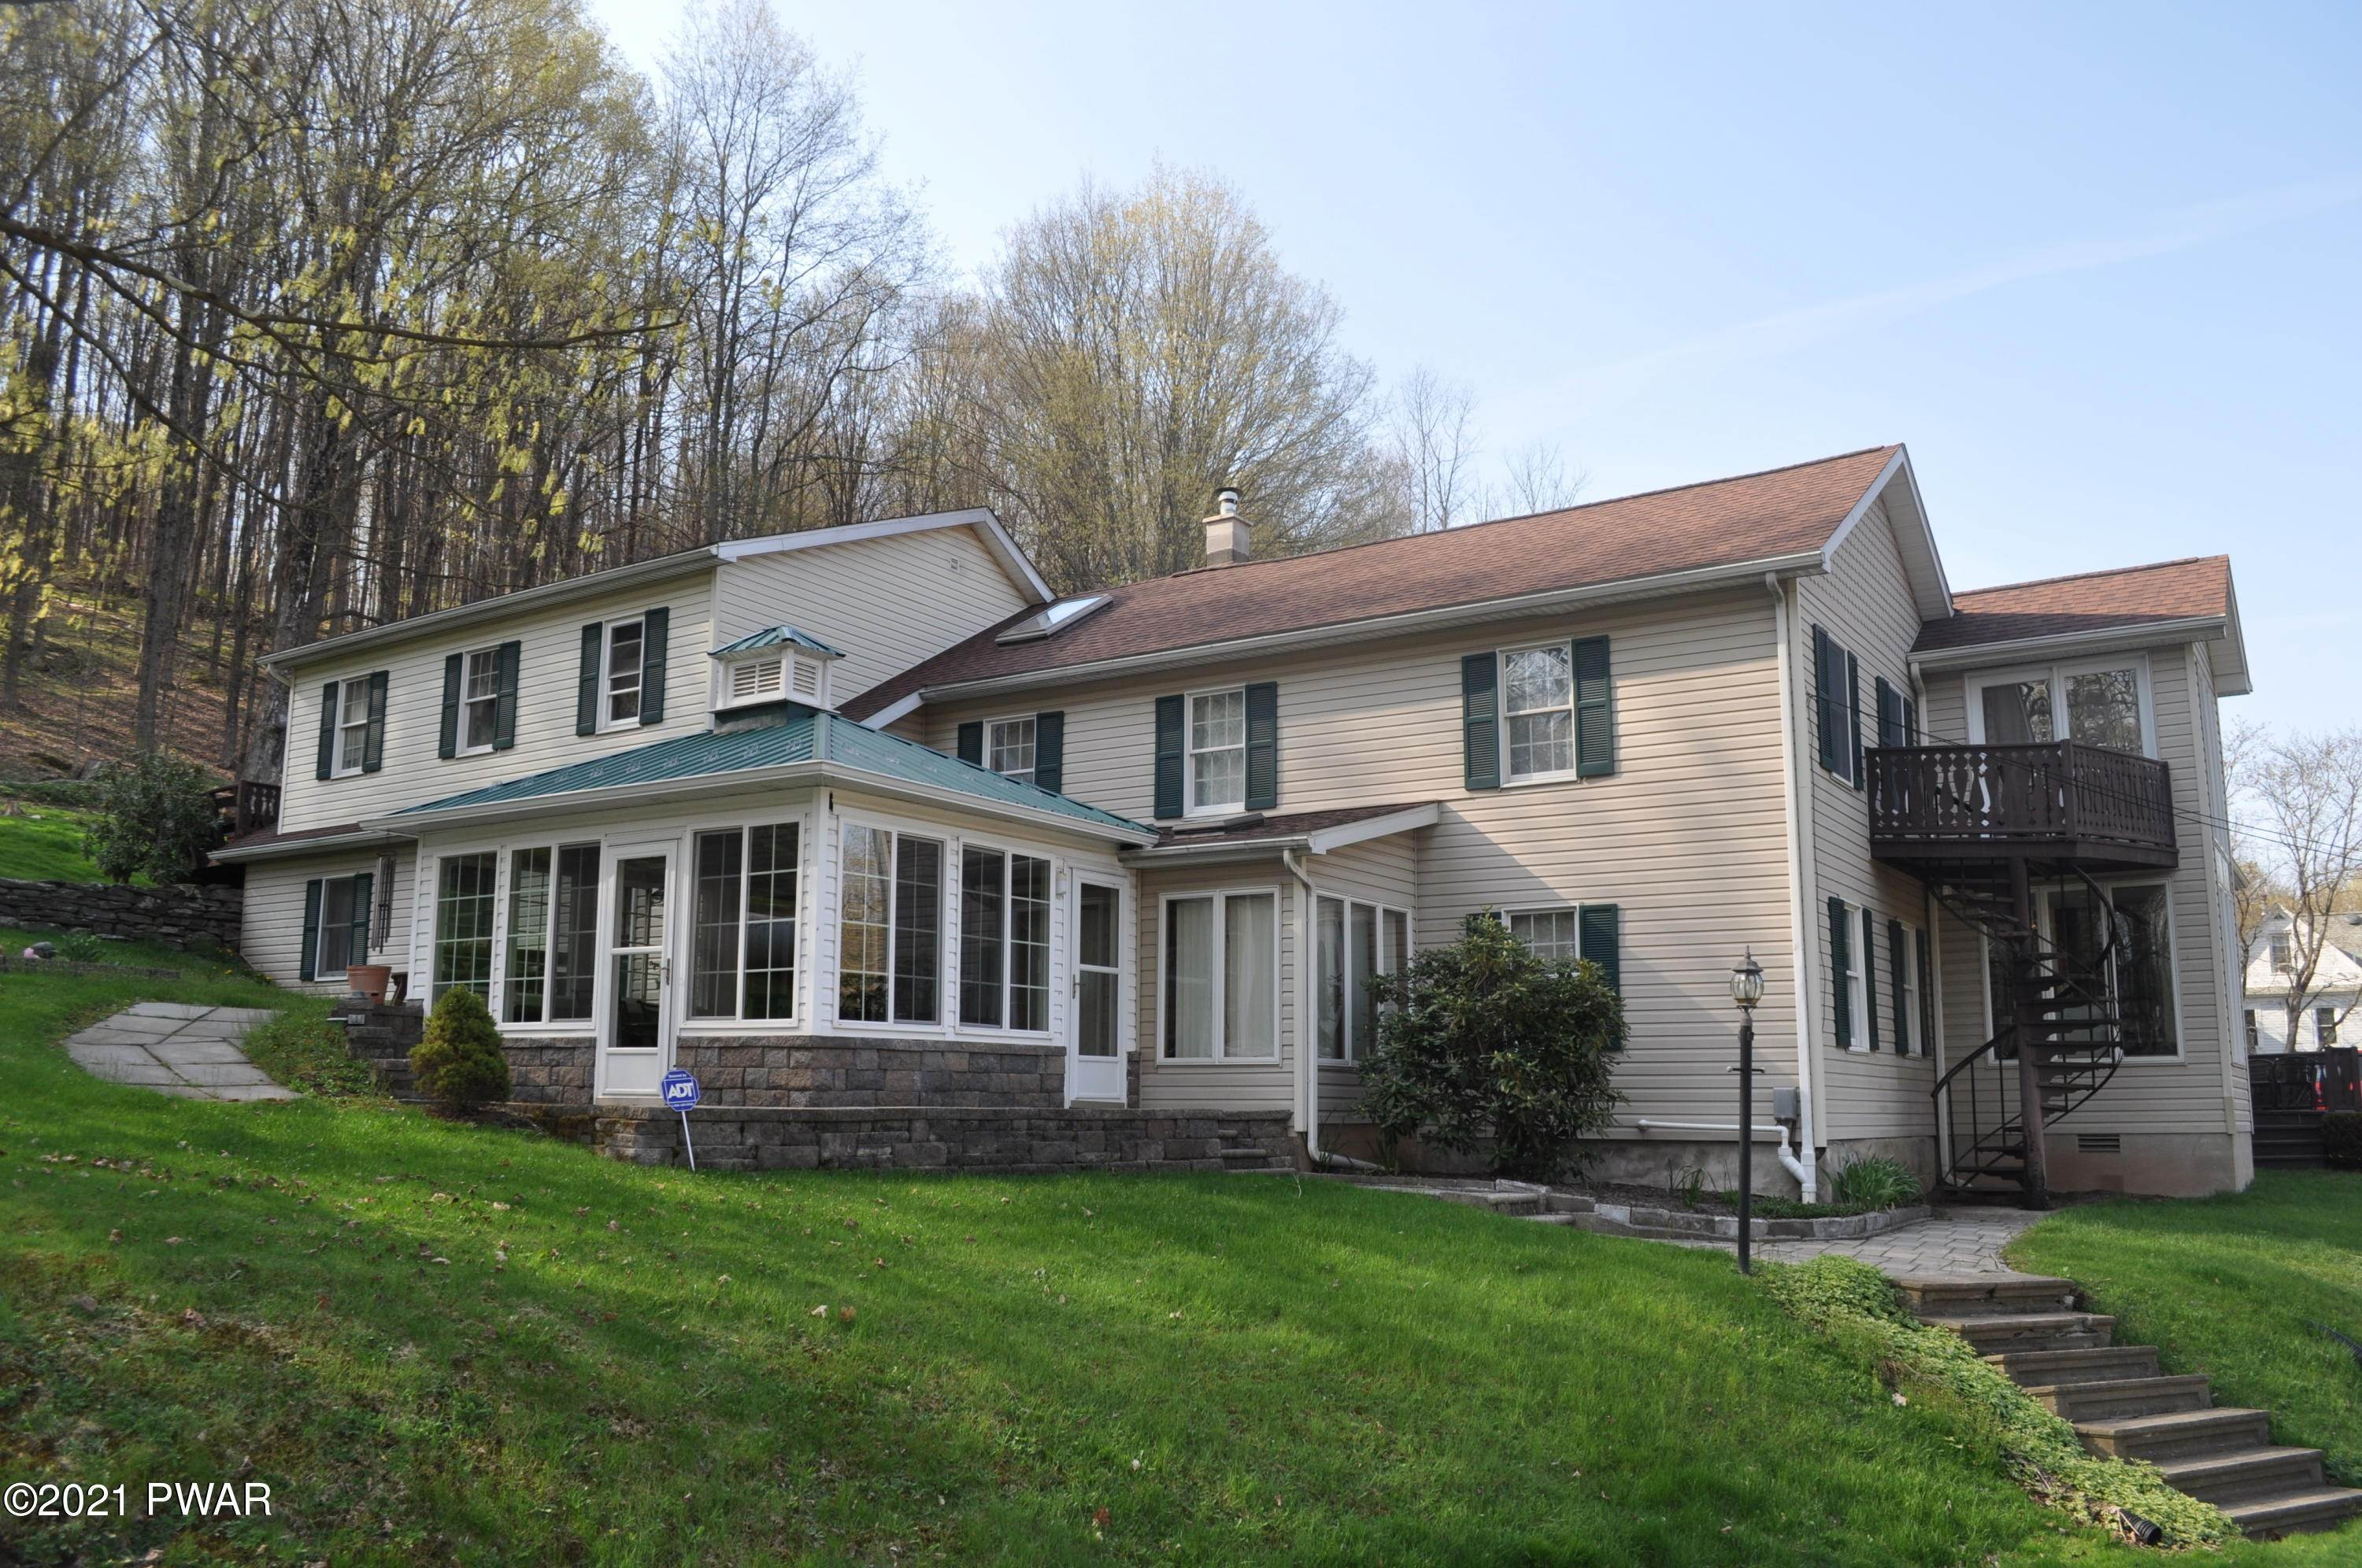 86. Single Family Homes for Sale at 277 High St Hop Bottom, Pennsylvania 18824 United States